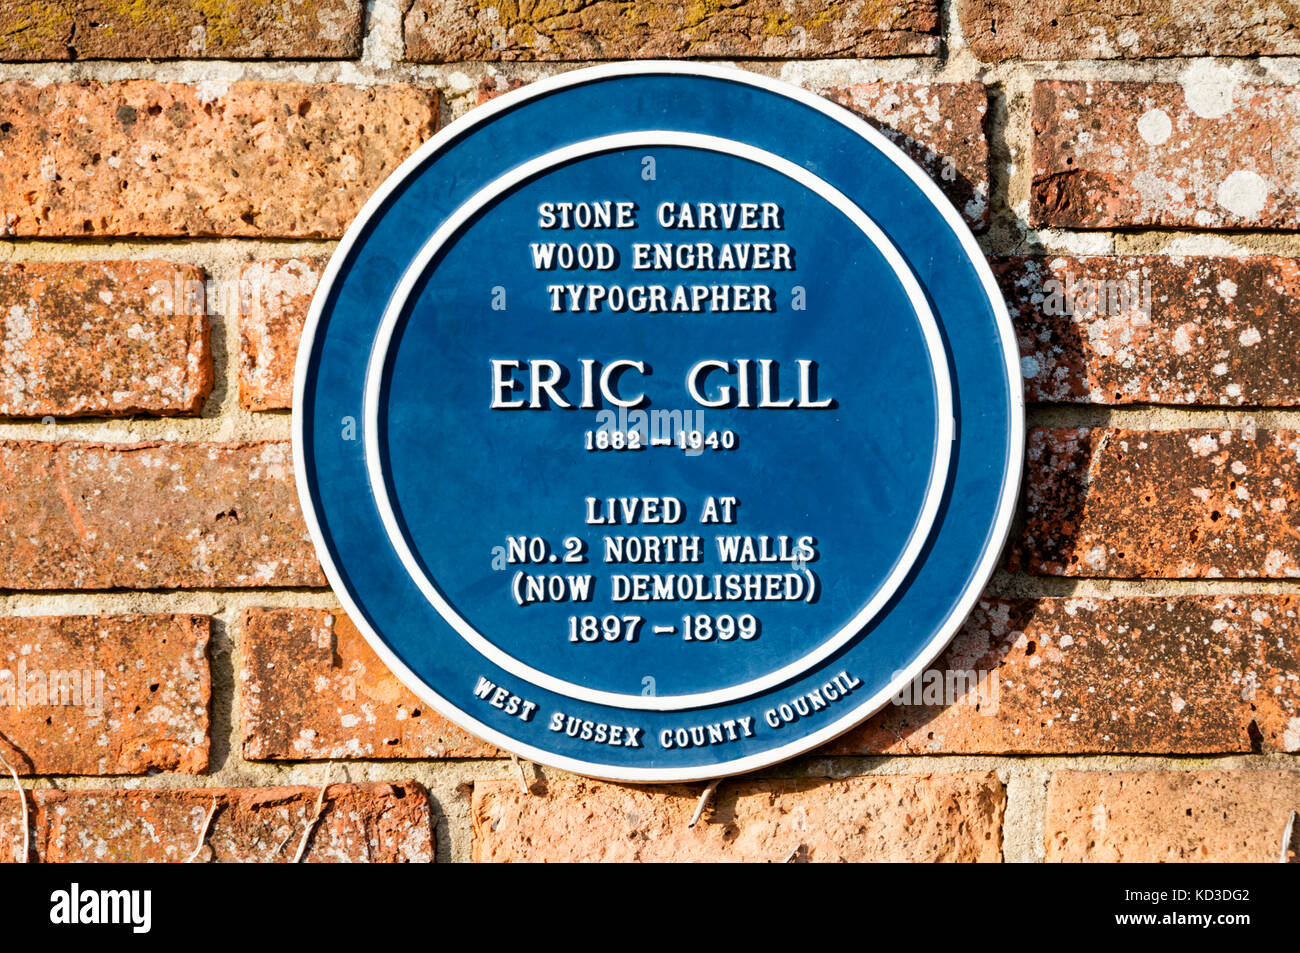 A blue plaque commemorating the stone carver, wood engraver & typographer Eric Gill in Chichester - Stock Image